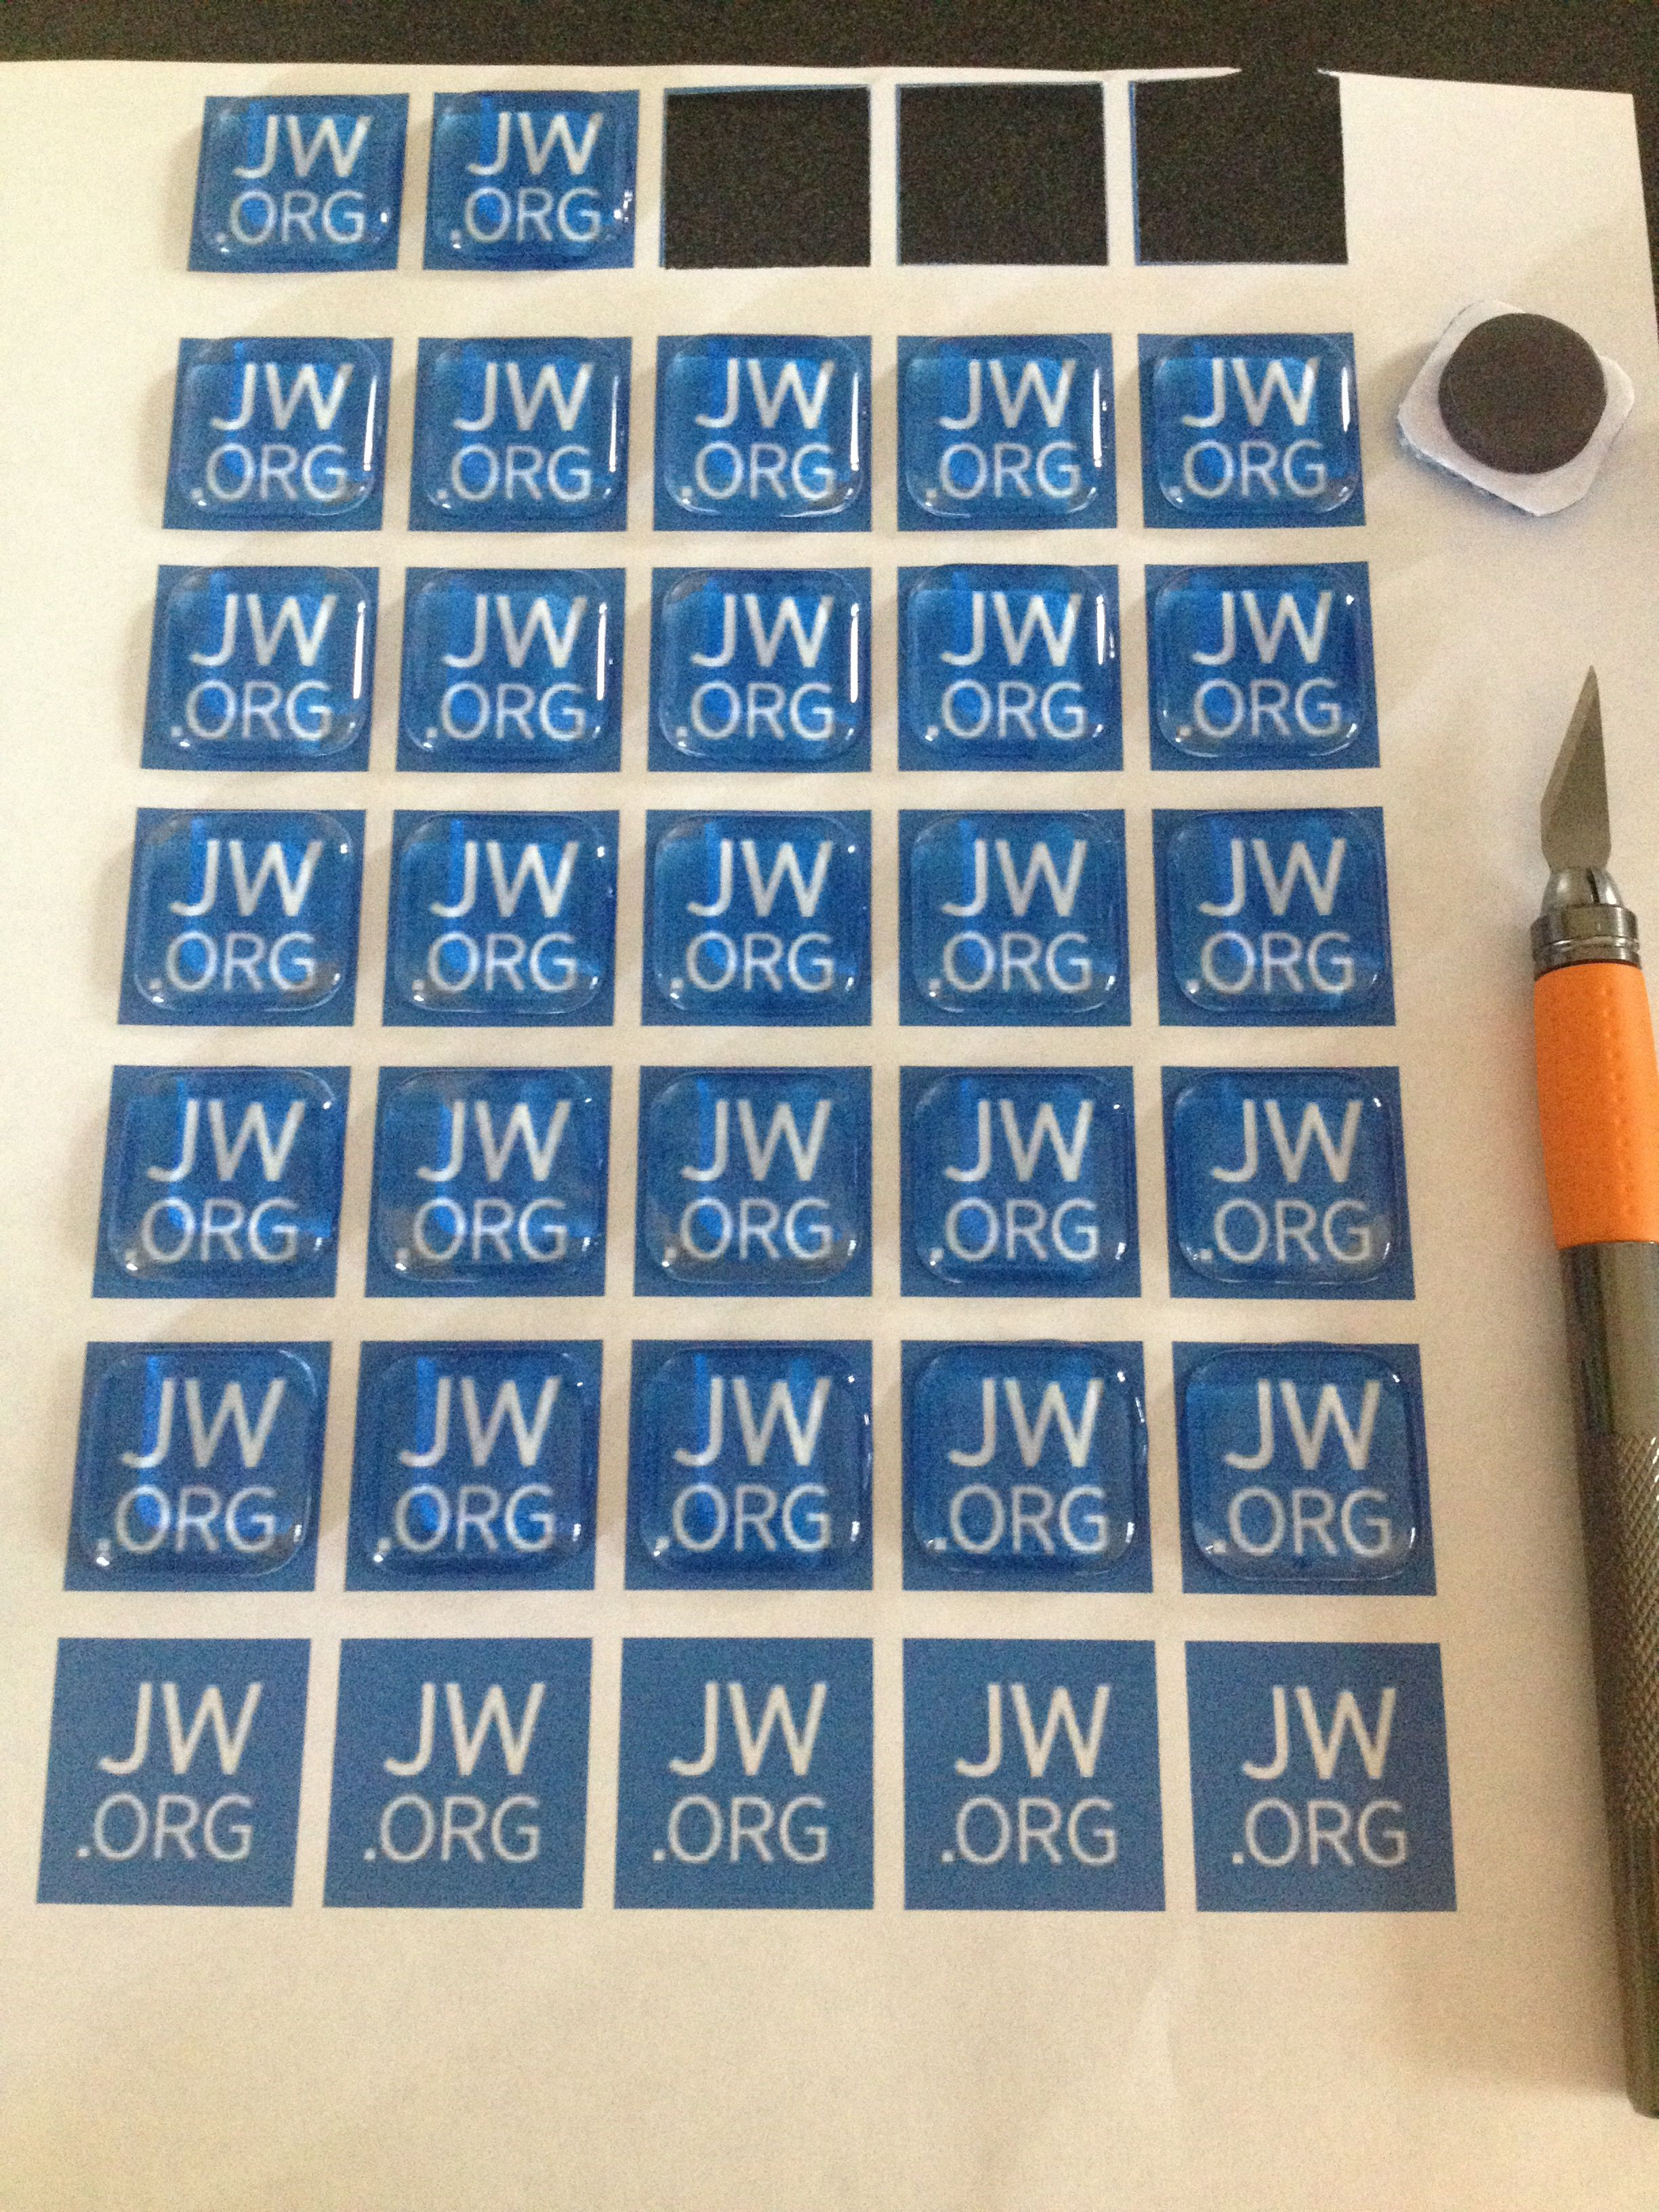 JW org magnets from glass tiles    cool gift for the next